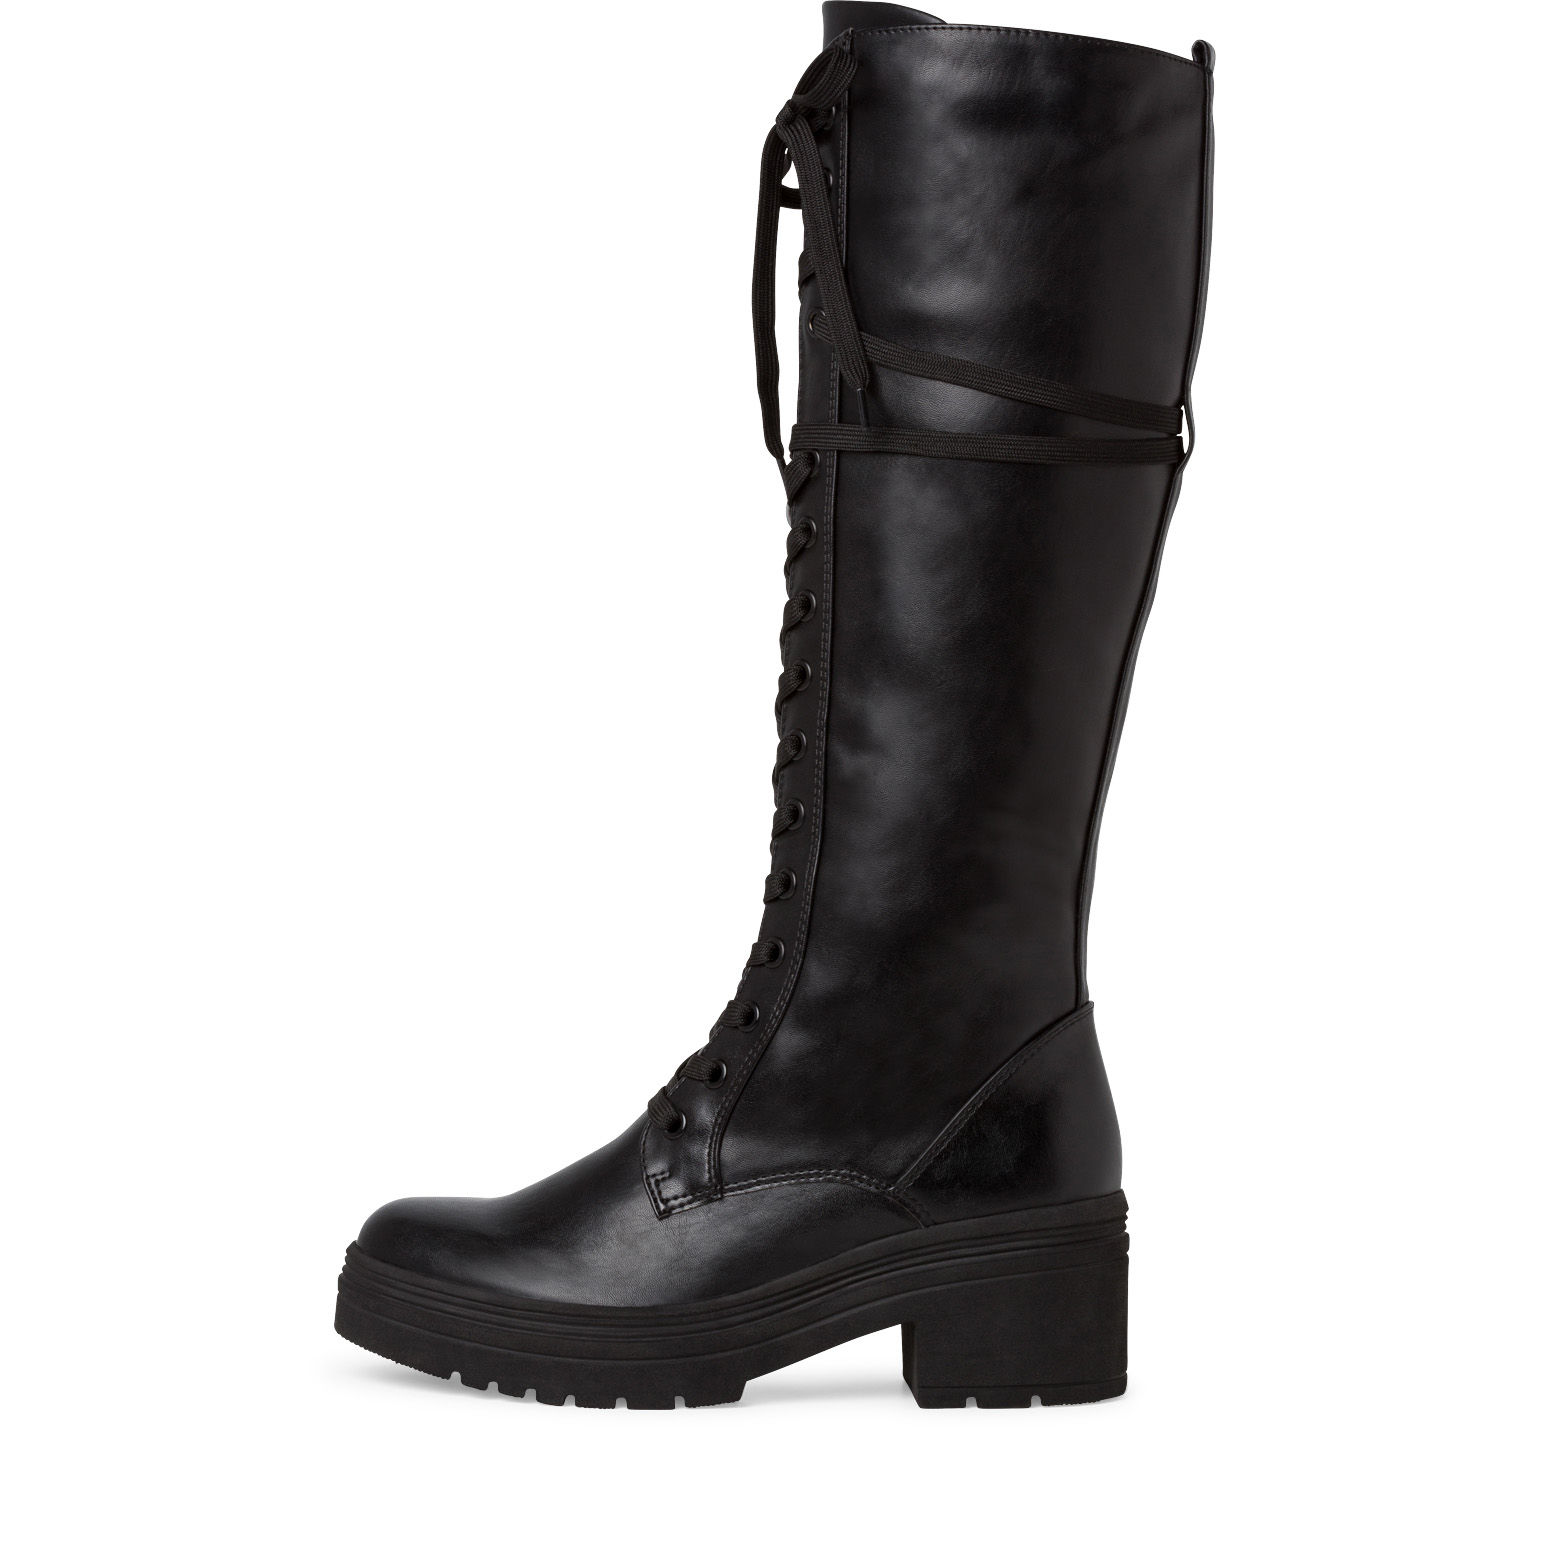 Stiefel - schwarz, BLACK ANTIC, hi-res